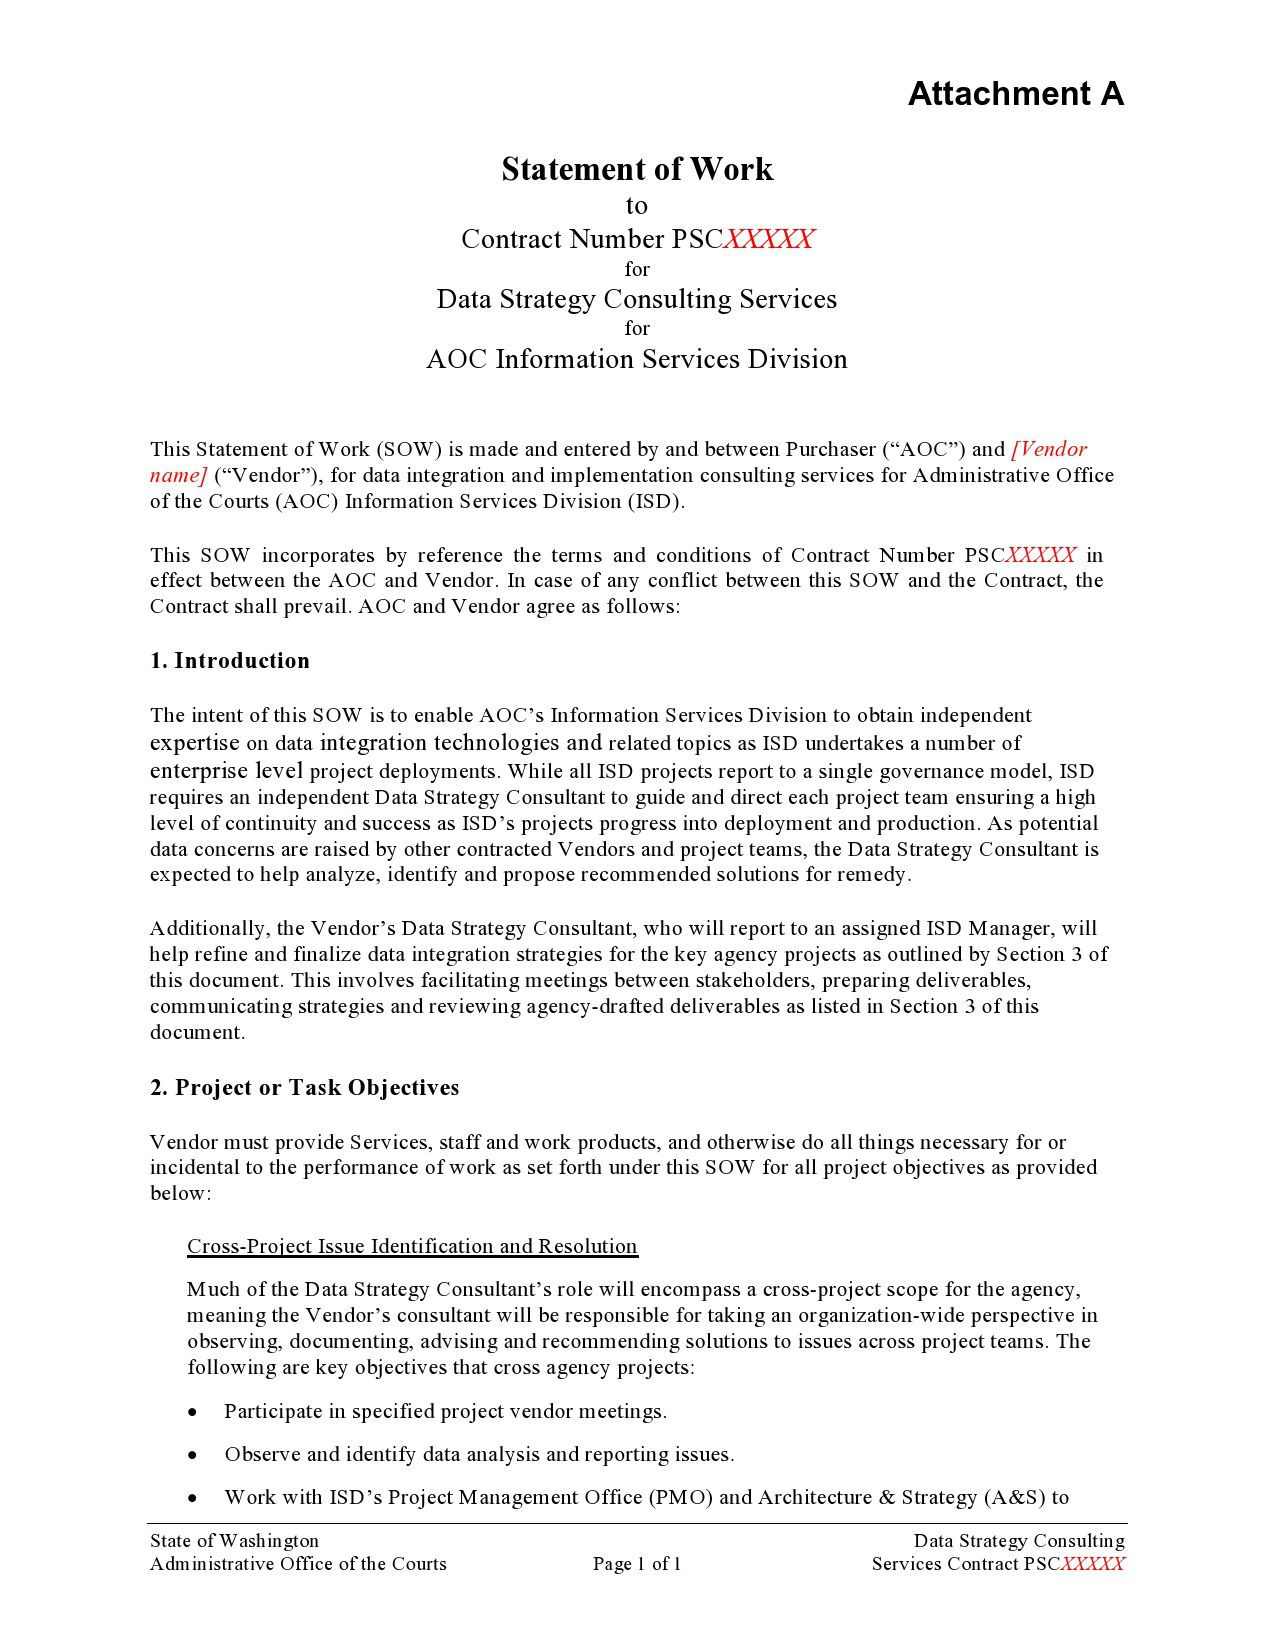 008 Best Statement Of Work Example Software Consulting Highest Quality Full